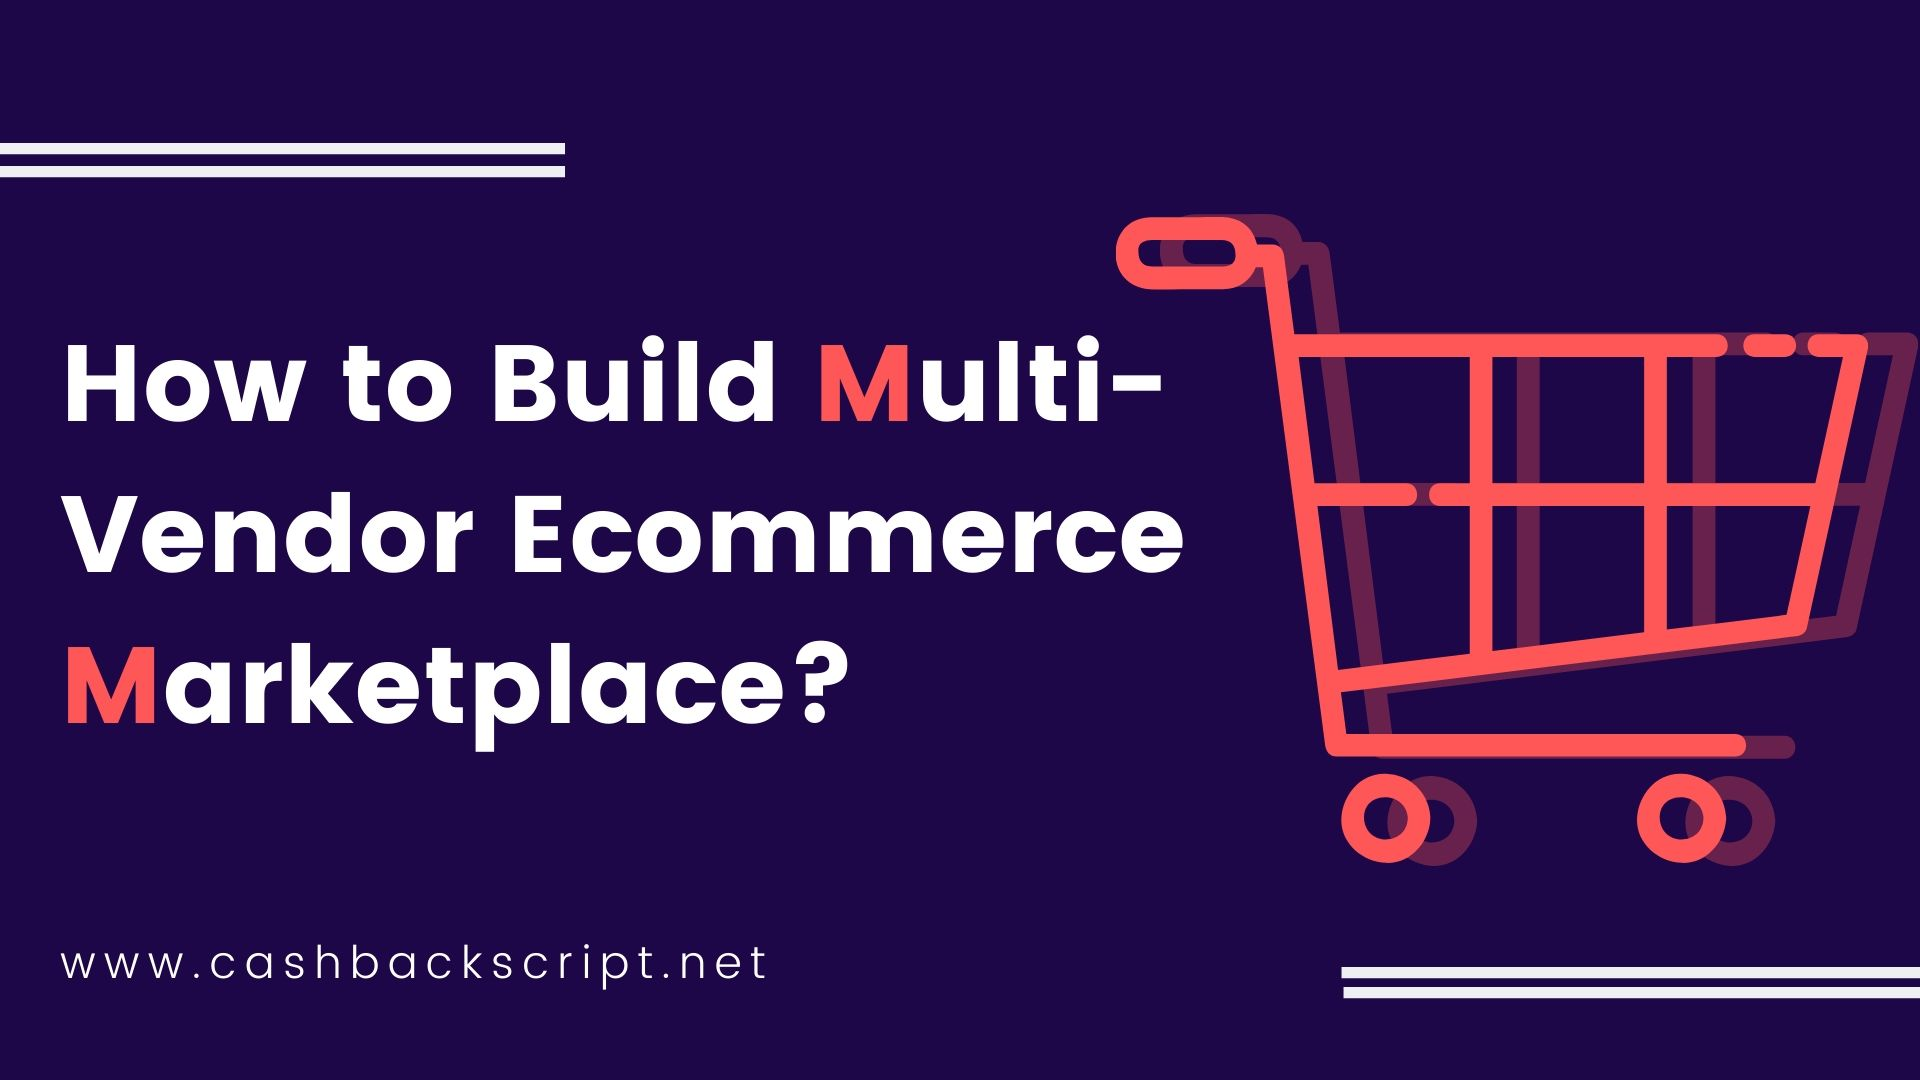 How to Build Multi-Vendor Ecommerce Marketplace?